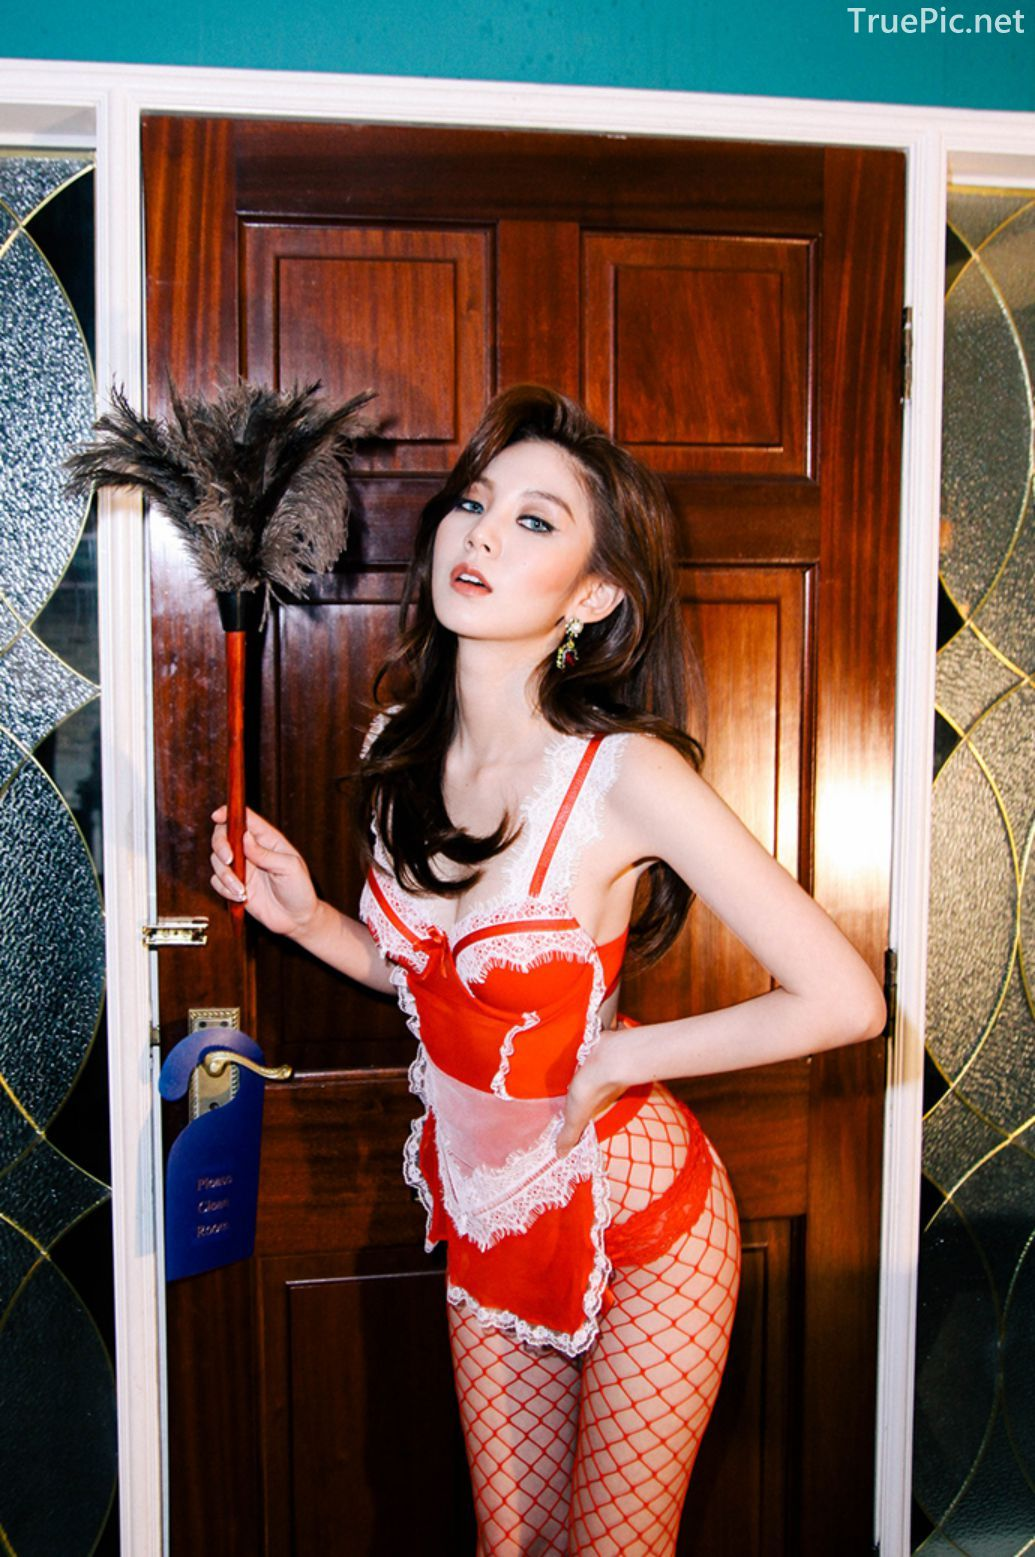 Lee Chae Eun - Korean Lingerie Model - Love Me More Sexy - TruePic.net - Picture 4